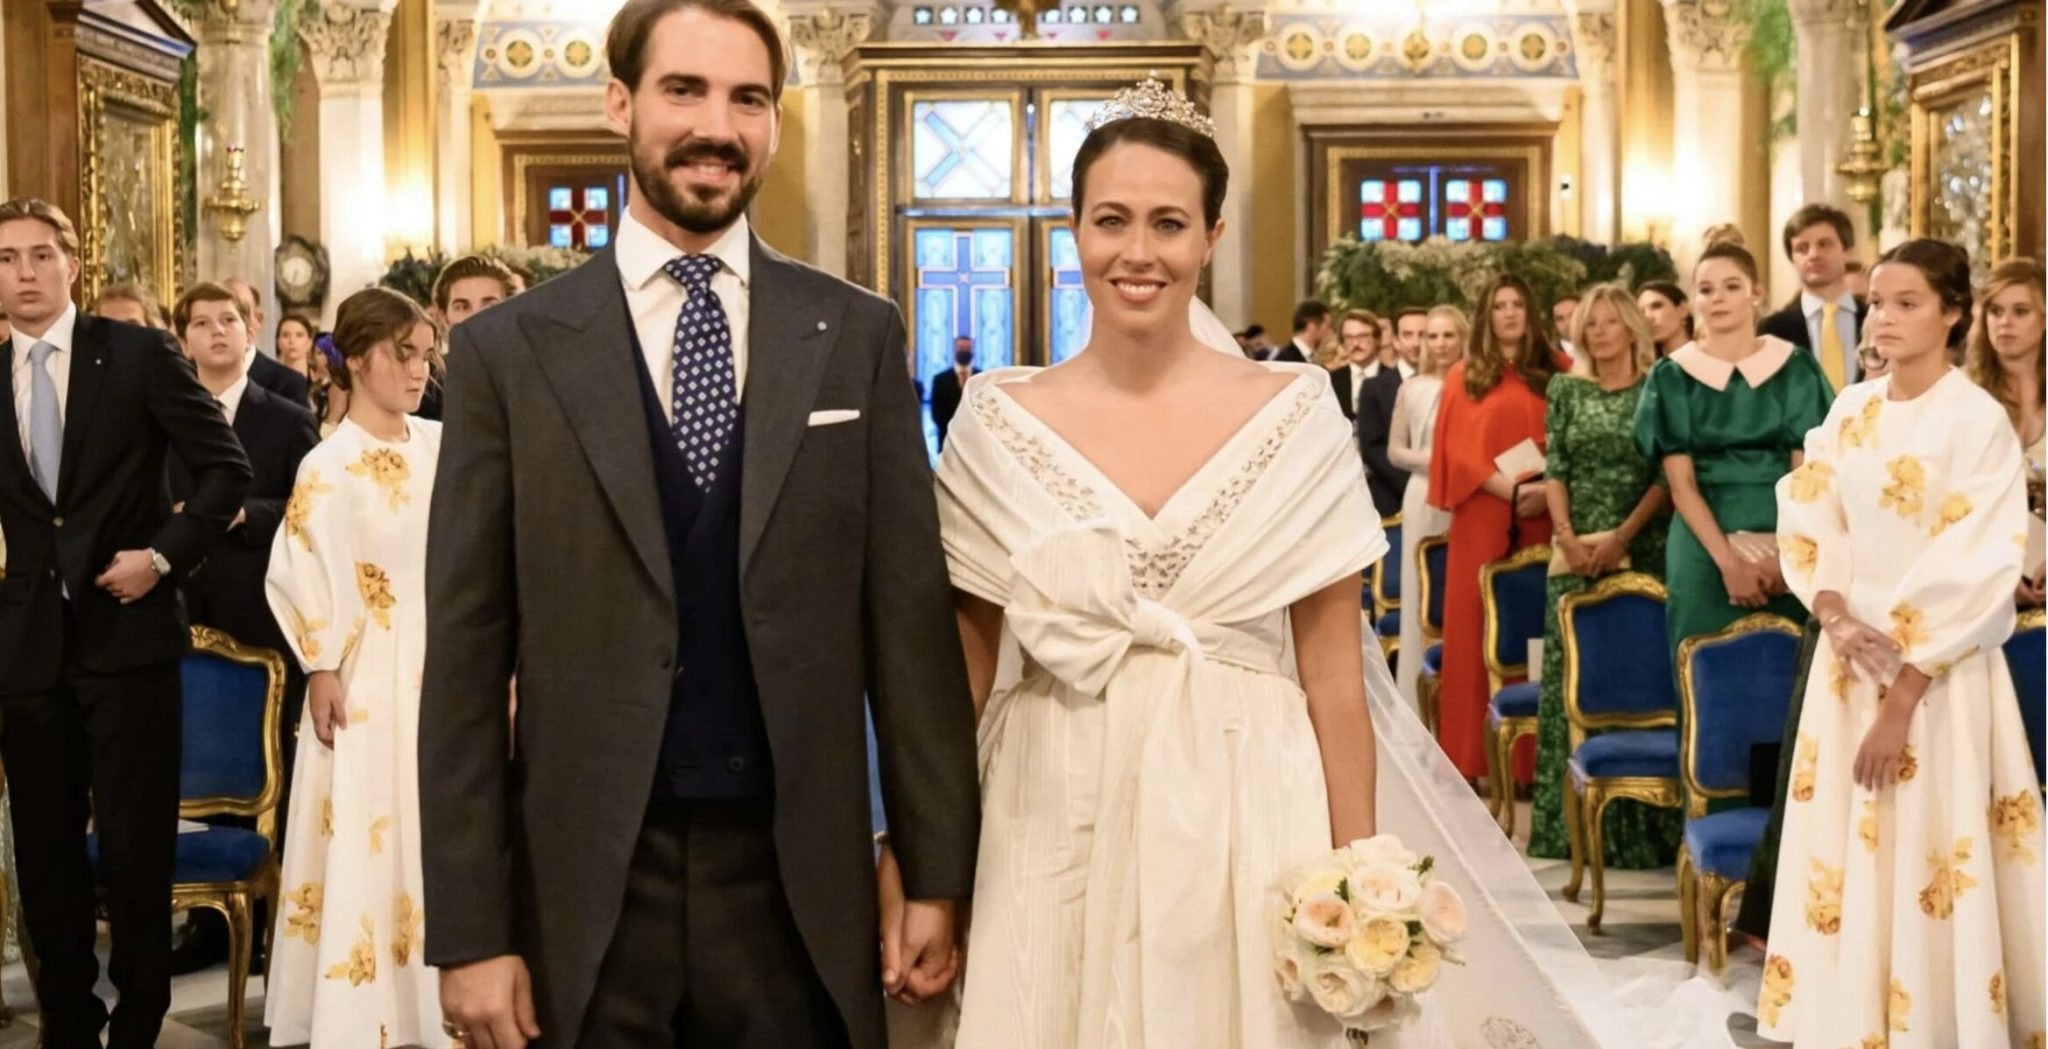 Prince Philippos and Princess Nina of Greece Marry in Athens – ZERO masks and social distancing – Double standard for the Elite